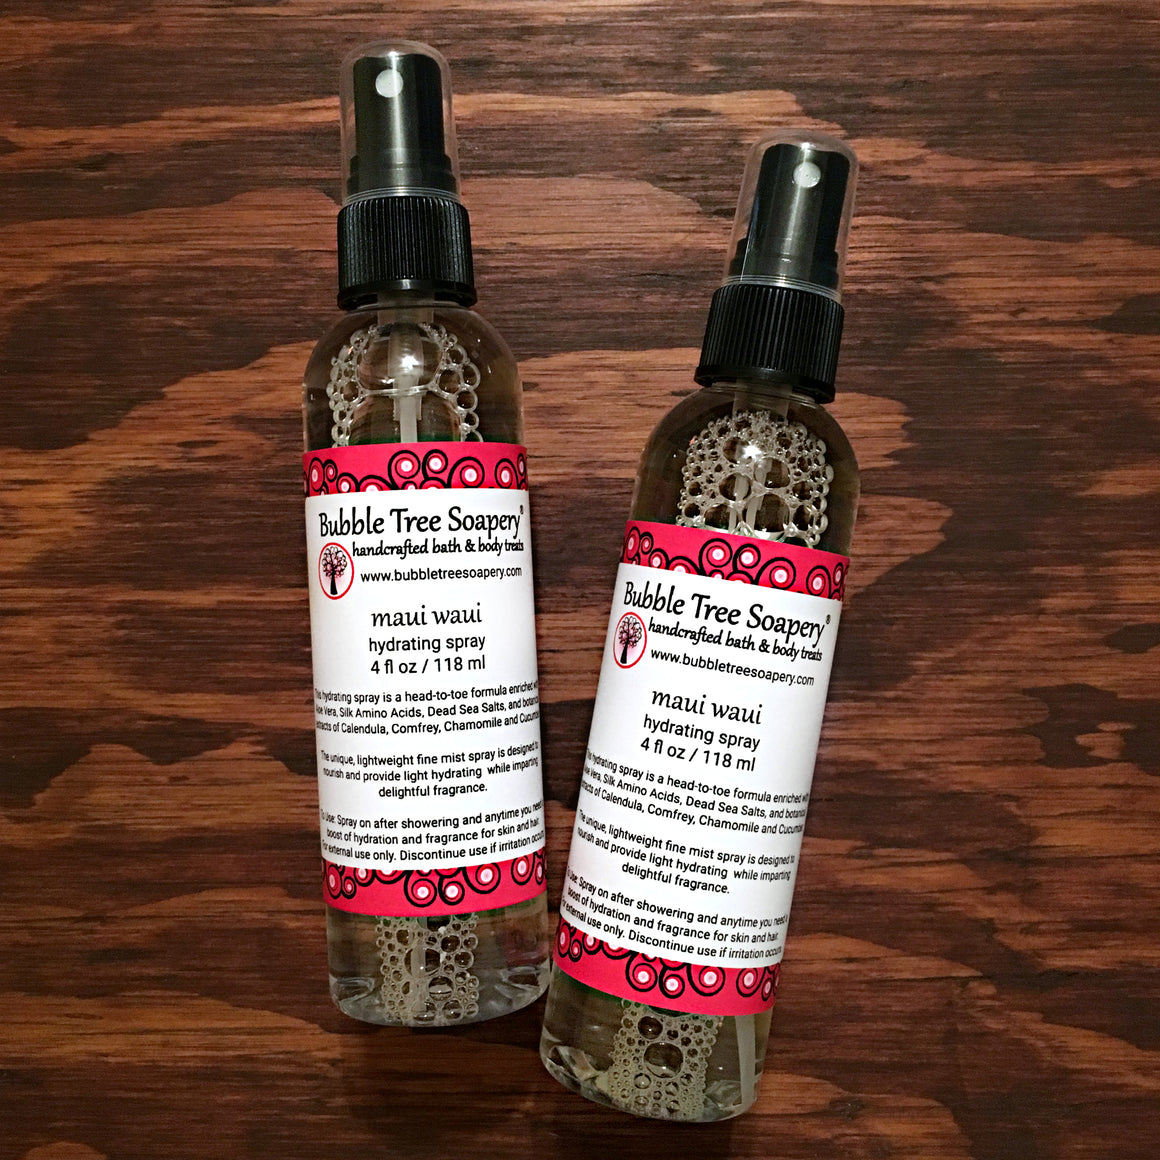 Maui Waui Hydrating Body Spray | Bubble Tree Soapery